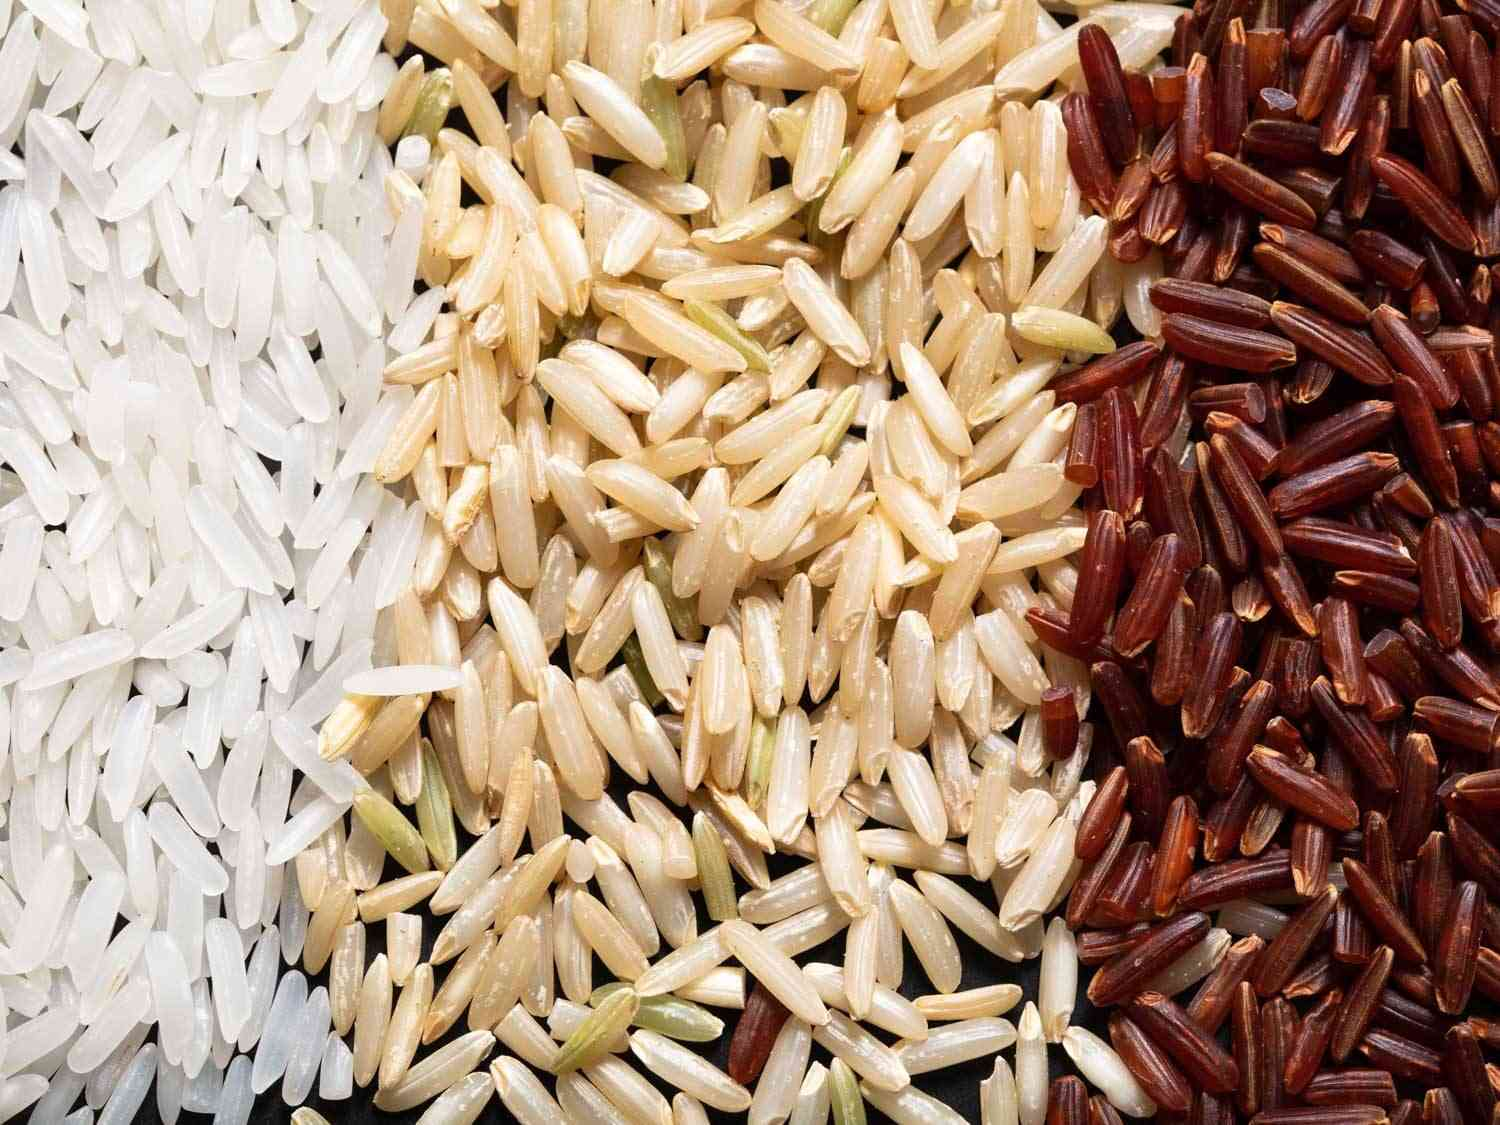 polished, brown, and red jasmine rice comparison shot